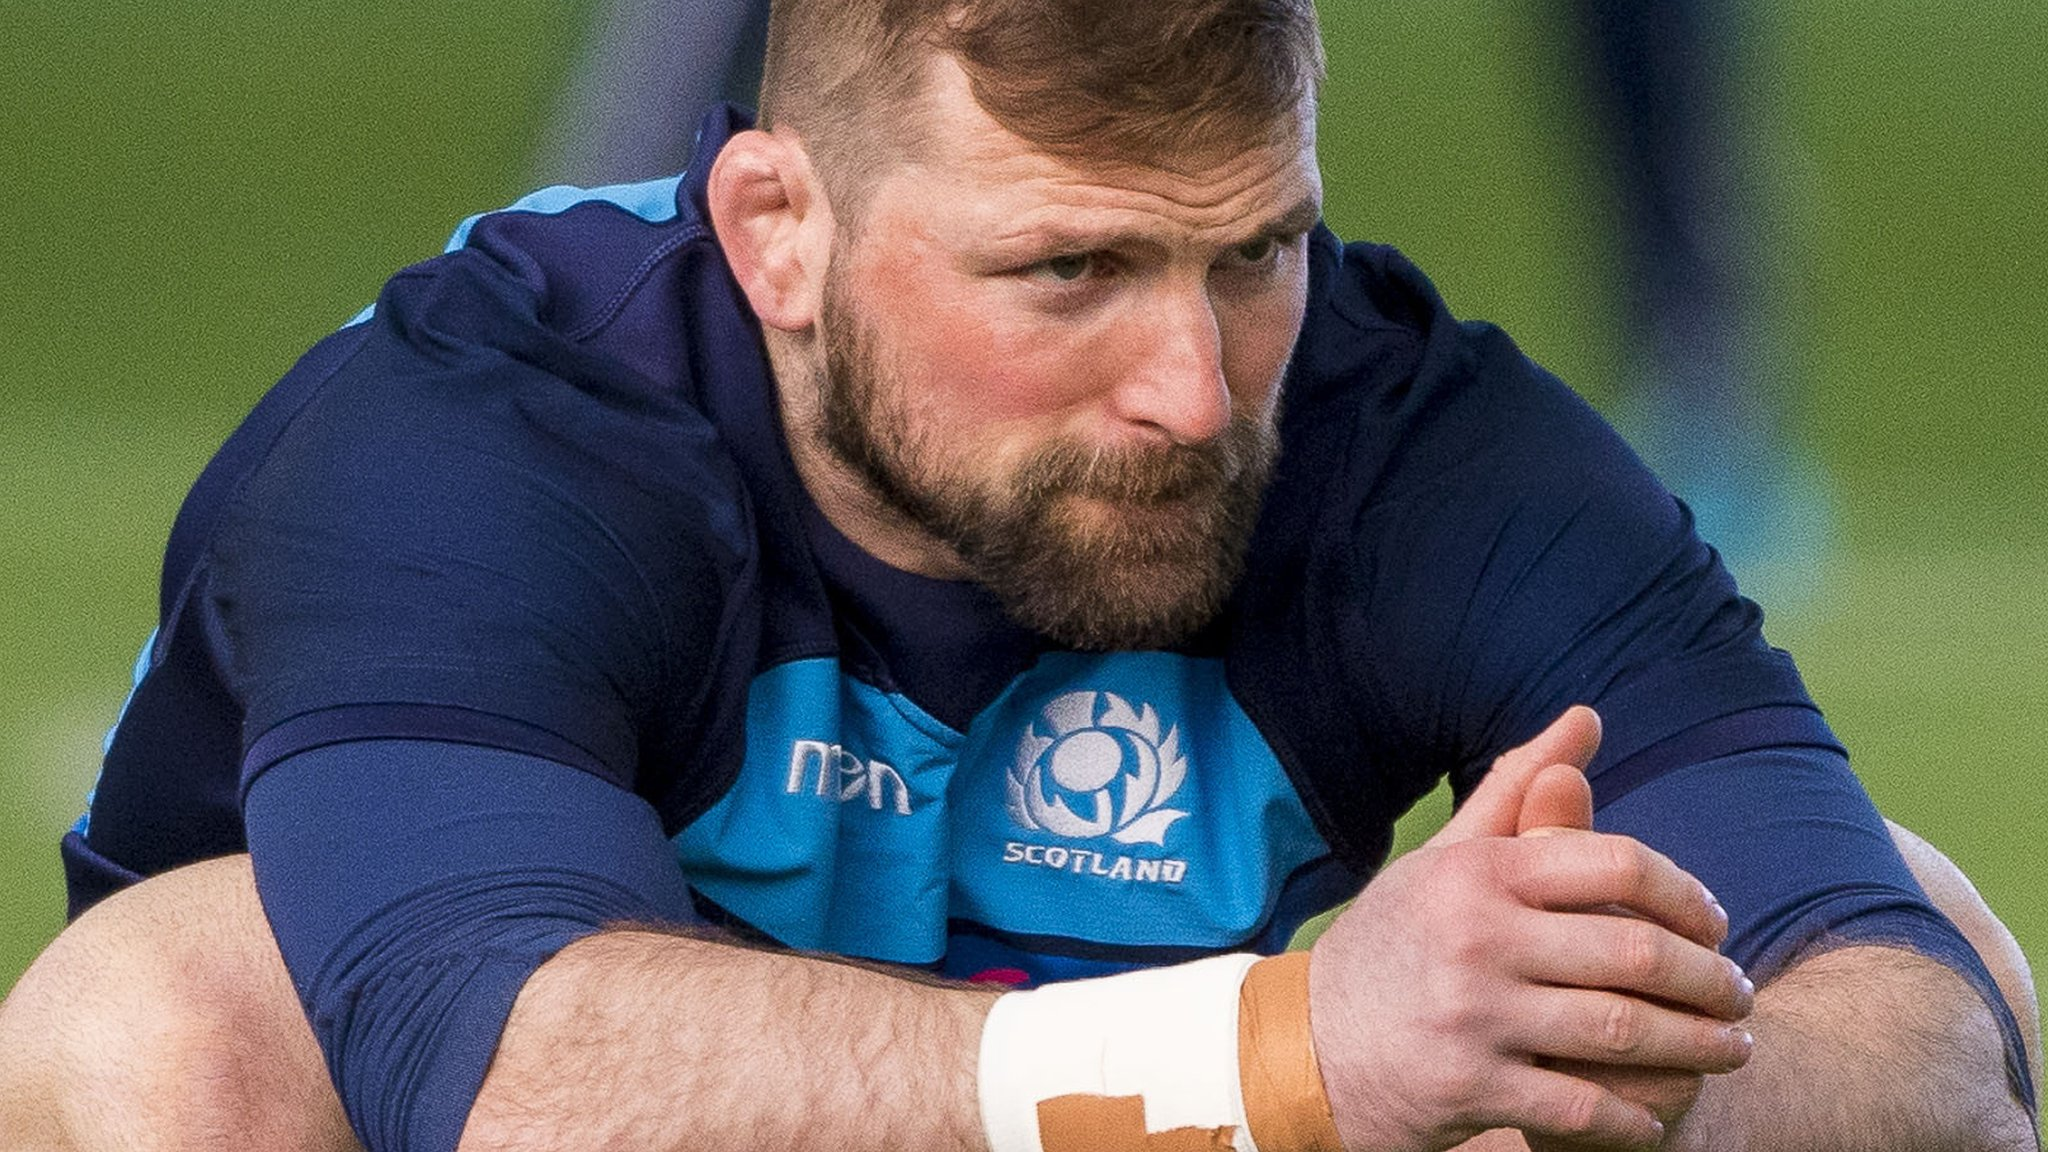 Pro14: Edinburgh v Leinster - John Barclay ready for debut after Achilles injury